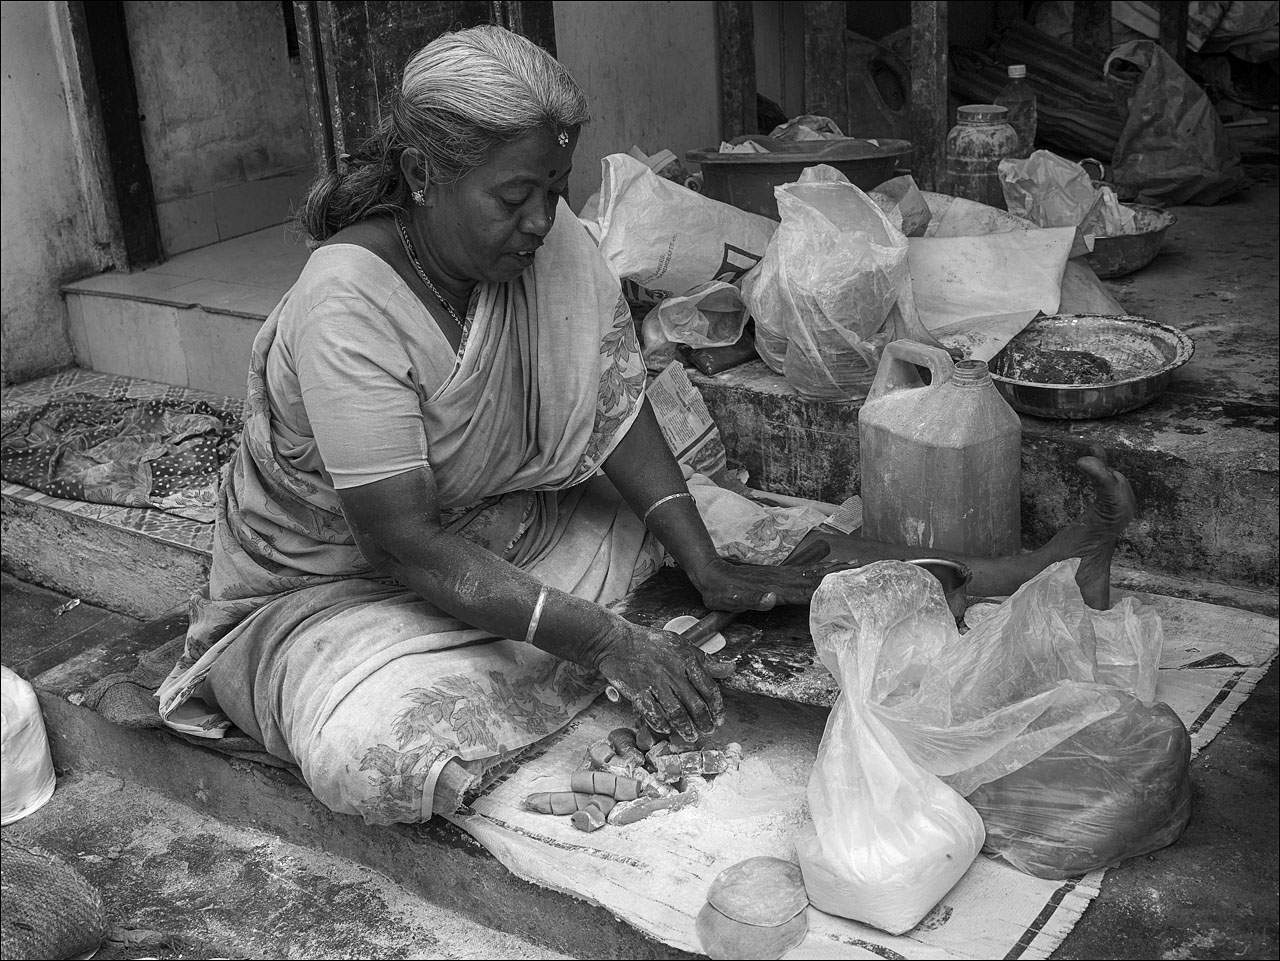 people india Daily Life of People in India   Black and White